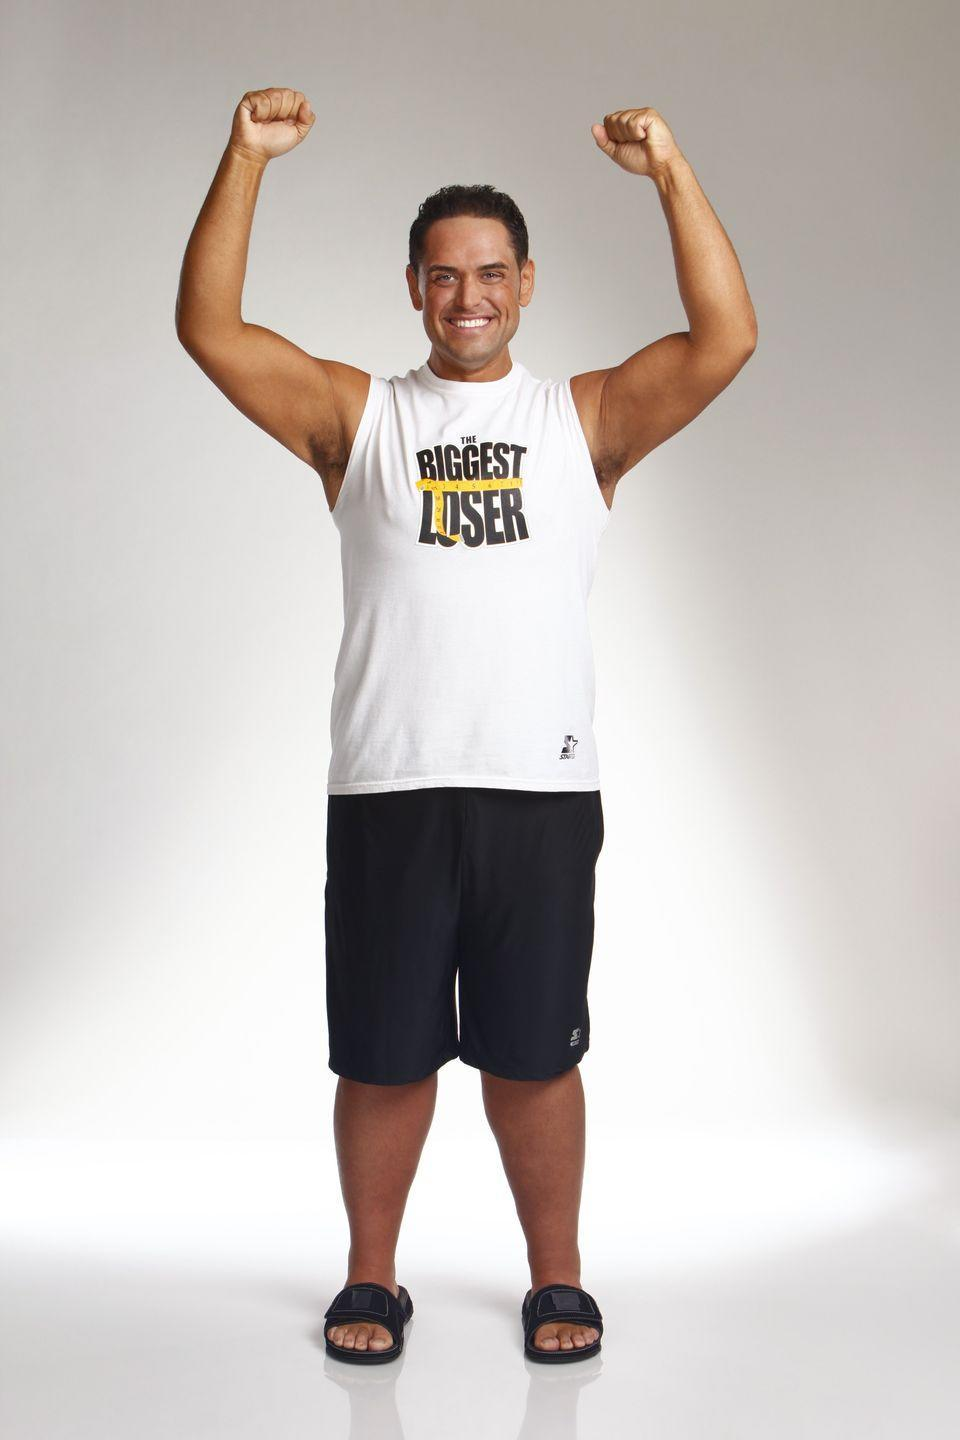 <p>When Michael started on the show, he weighed 526 pounds—the show's heaviest contestant ever. He ended up finishing at 262 pounds to win season 9.</p>